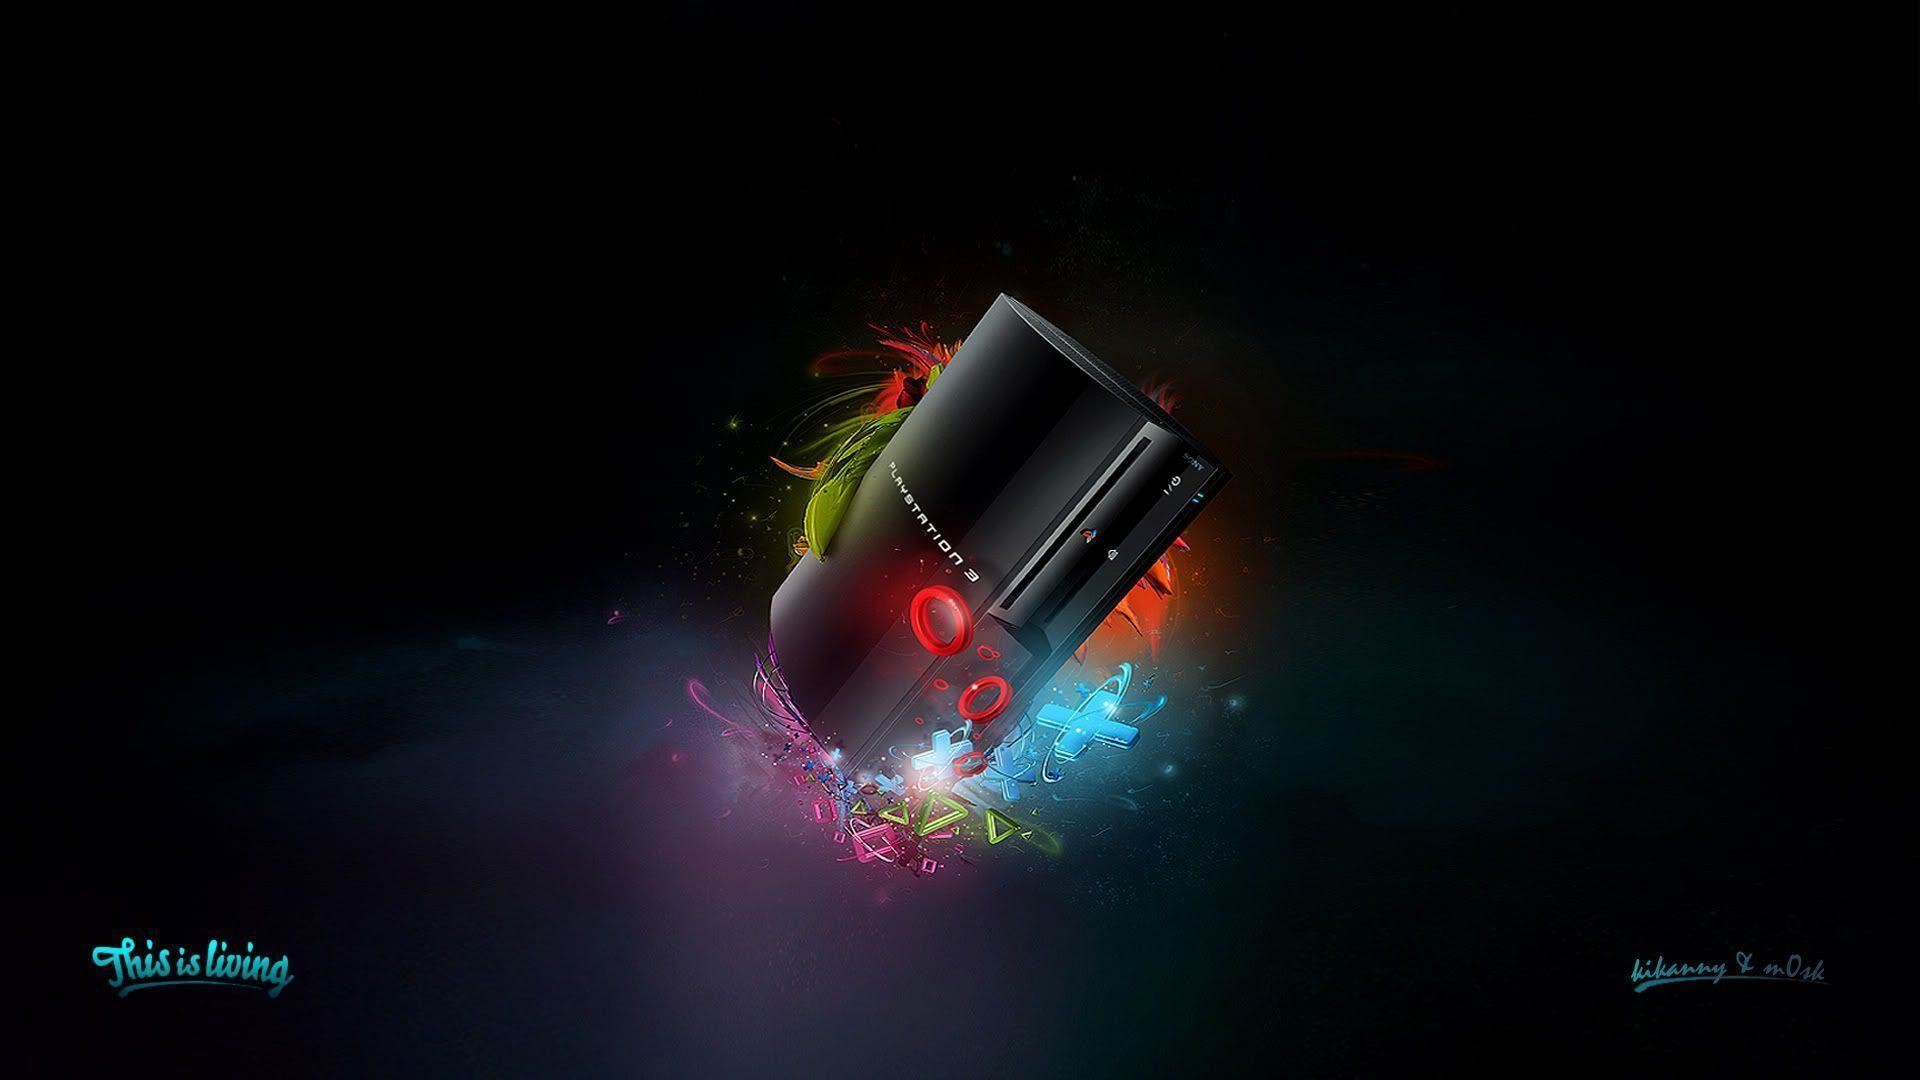 Ps3 Hd Wallpapers and Background